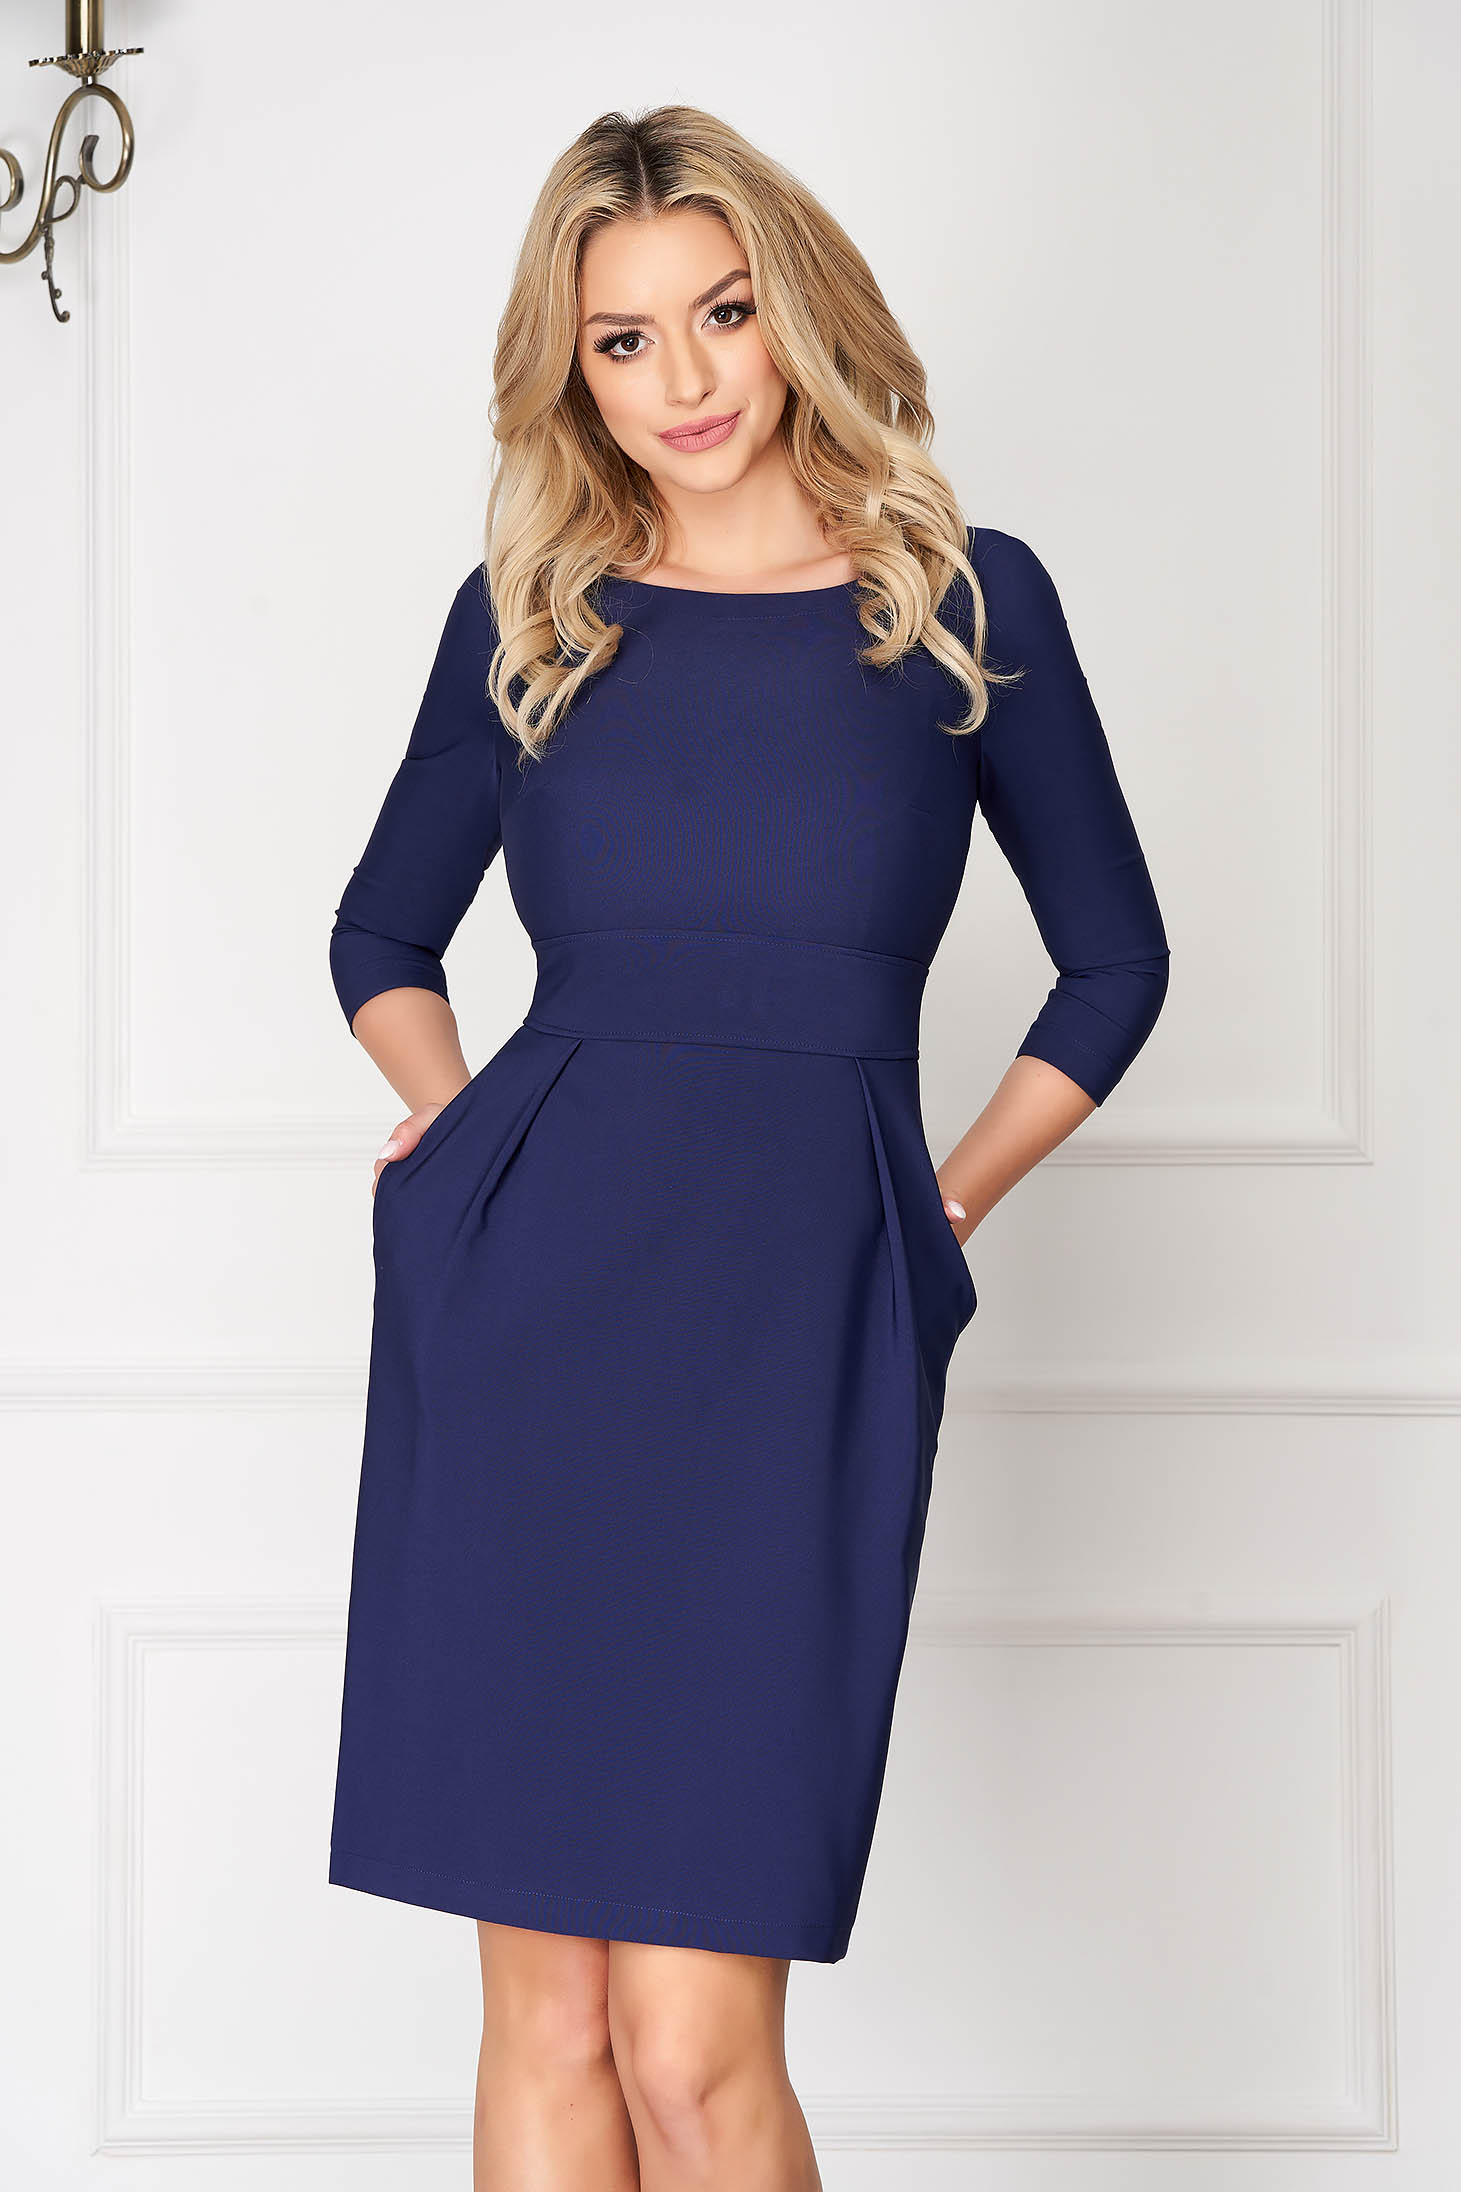 StarShinerS darkblue office dress slightly elastic fabric with pockets short cut a-line